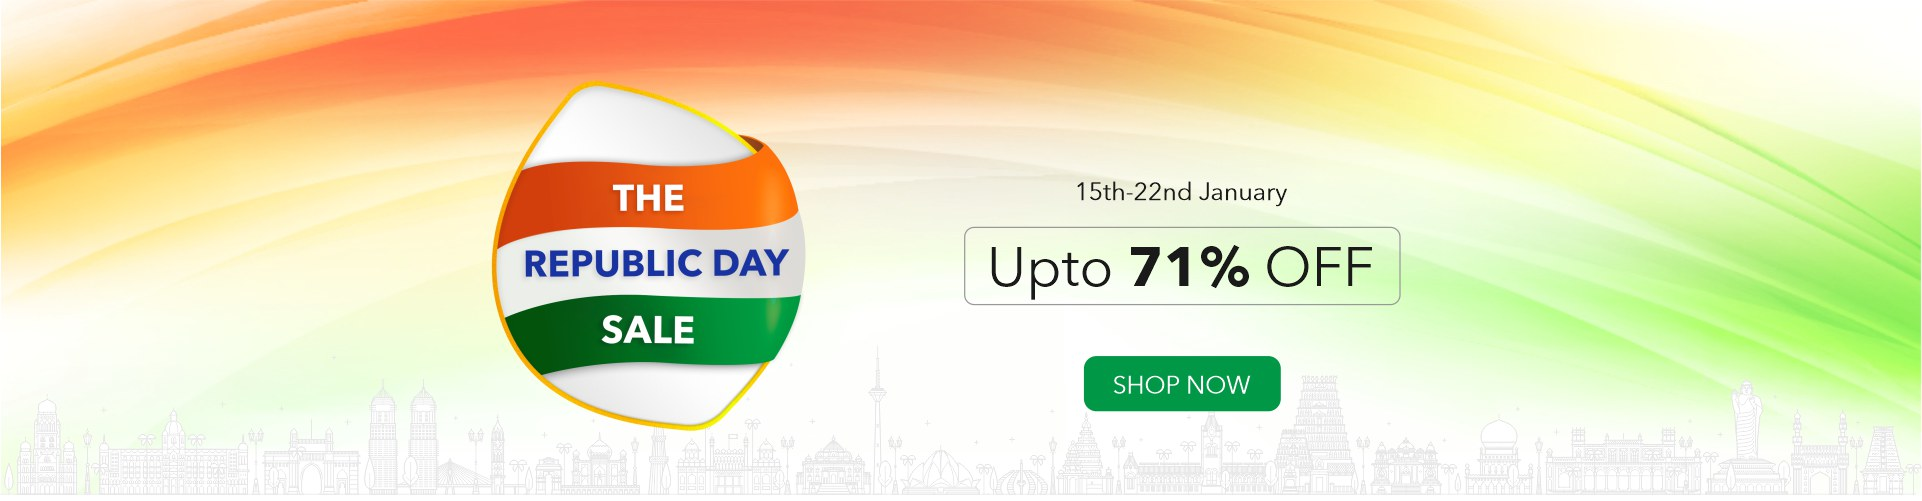 home-REPUBLIC_DAY_SALE_Homepage_DT_banner1